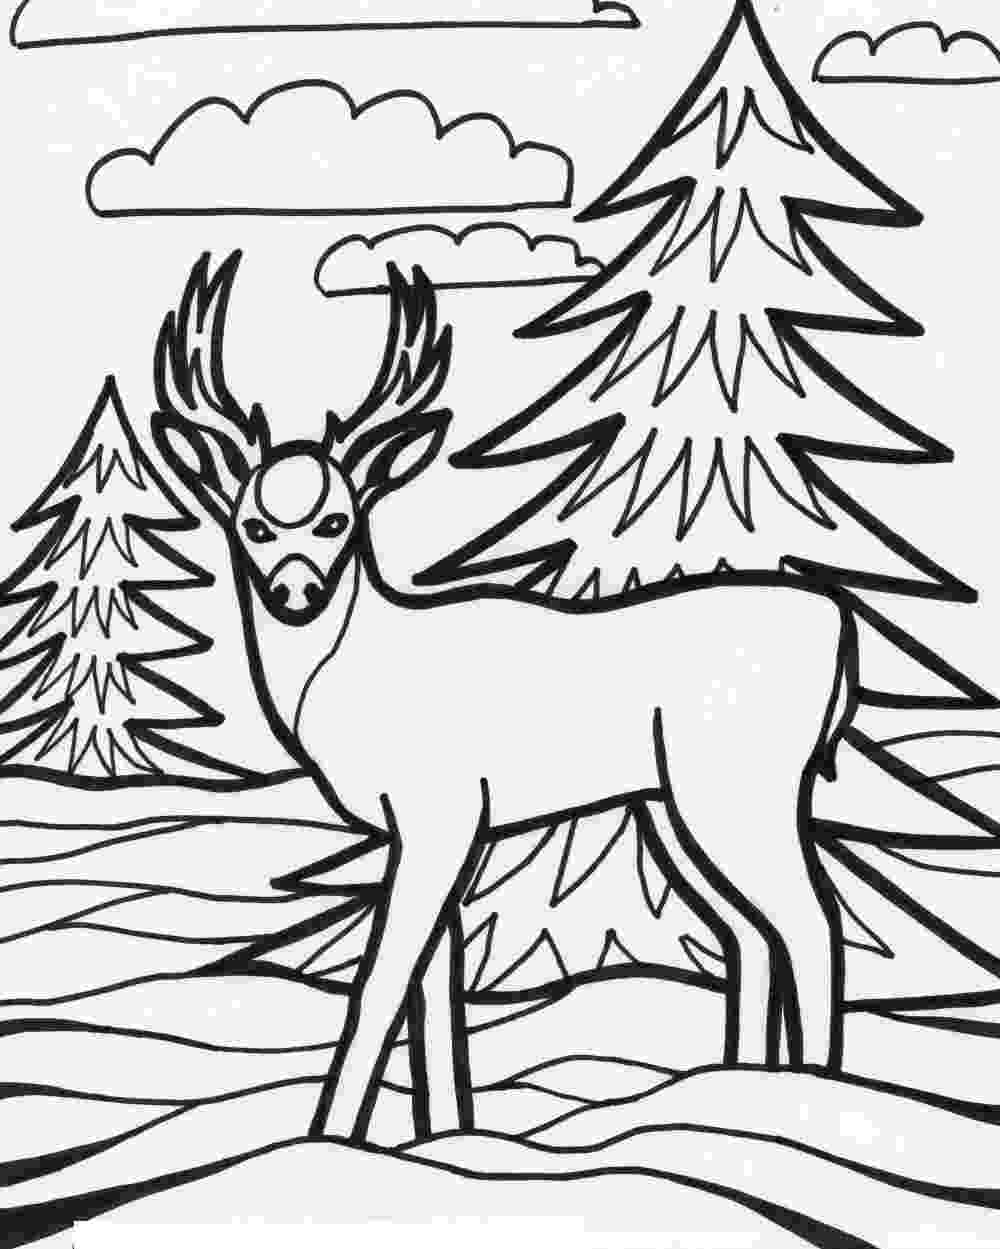 deer coloring sheet for education new animal deer coloring pages coloring sheet deer